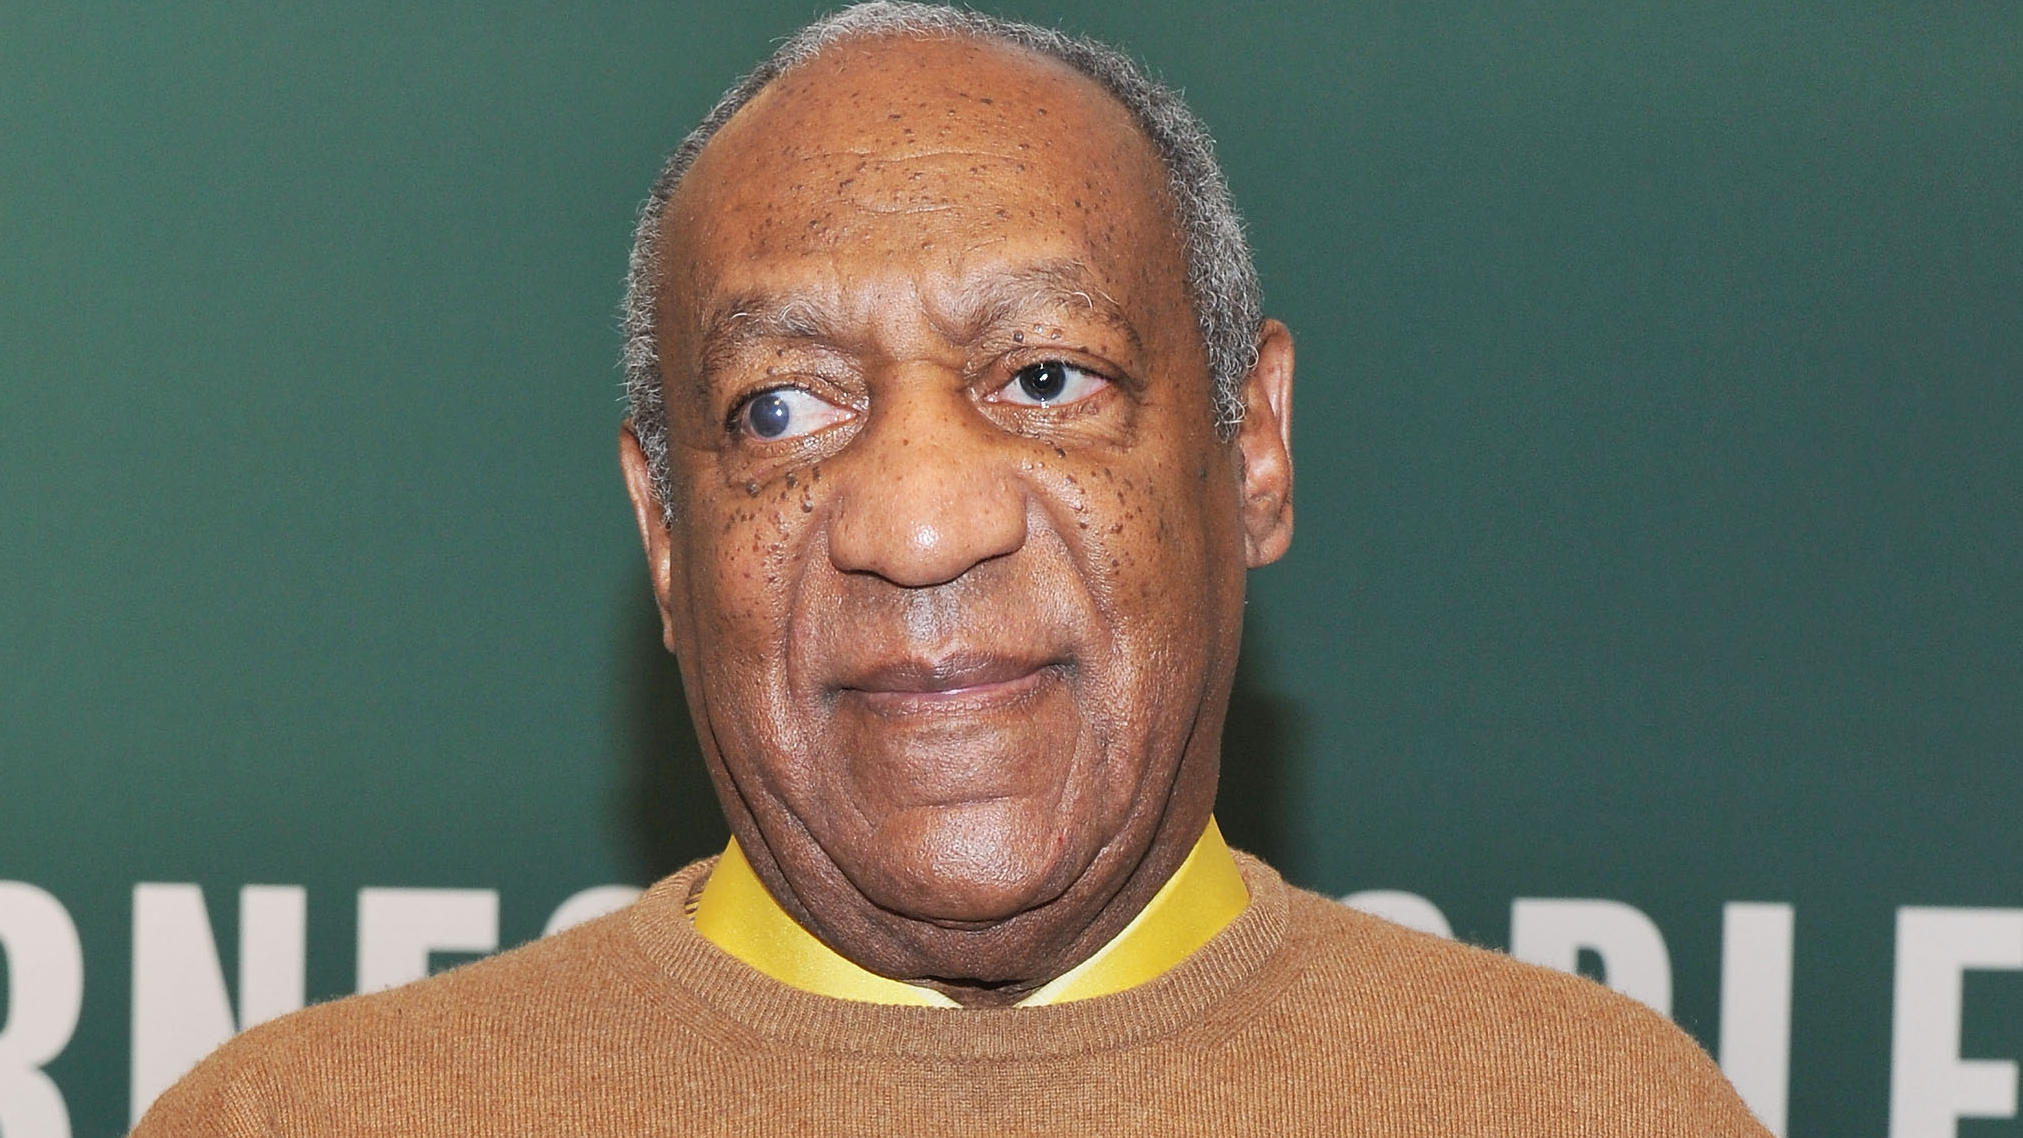 2023x1138 - Bill Cosby Wallpapers 5